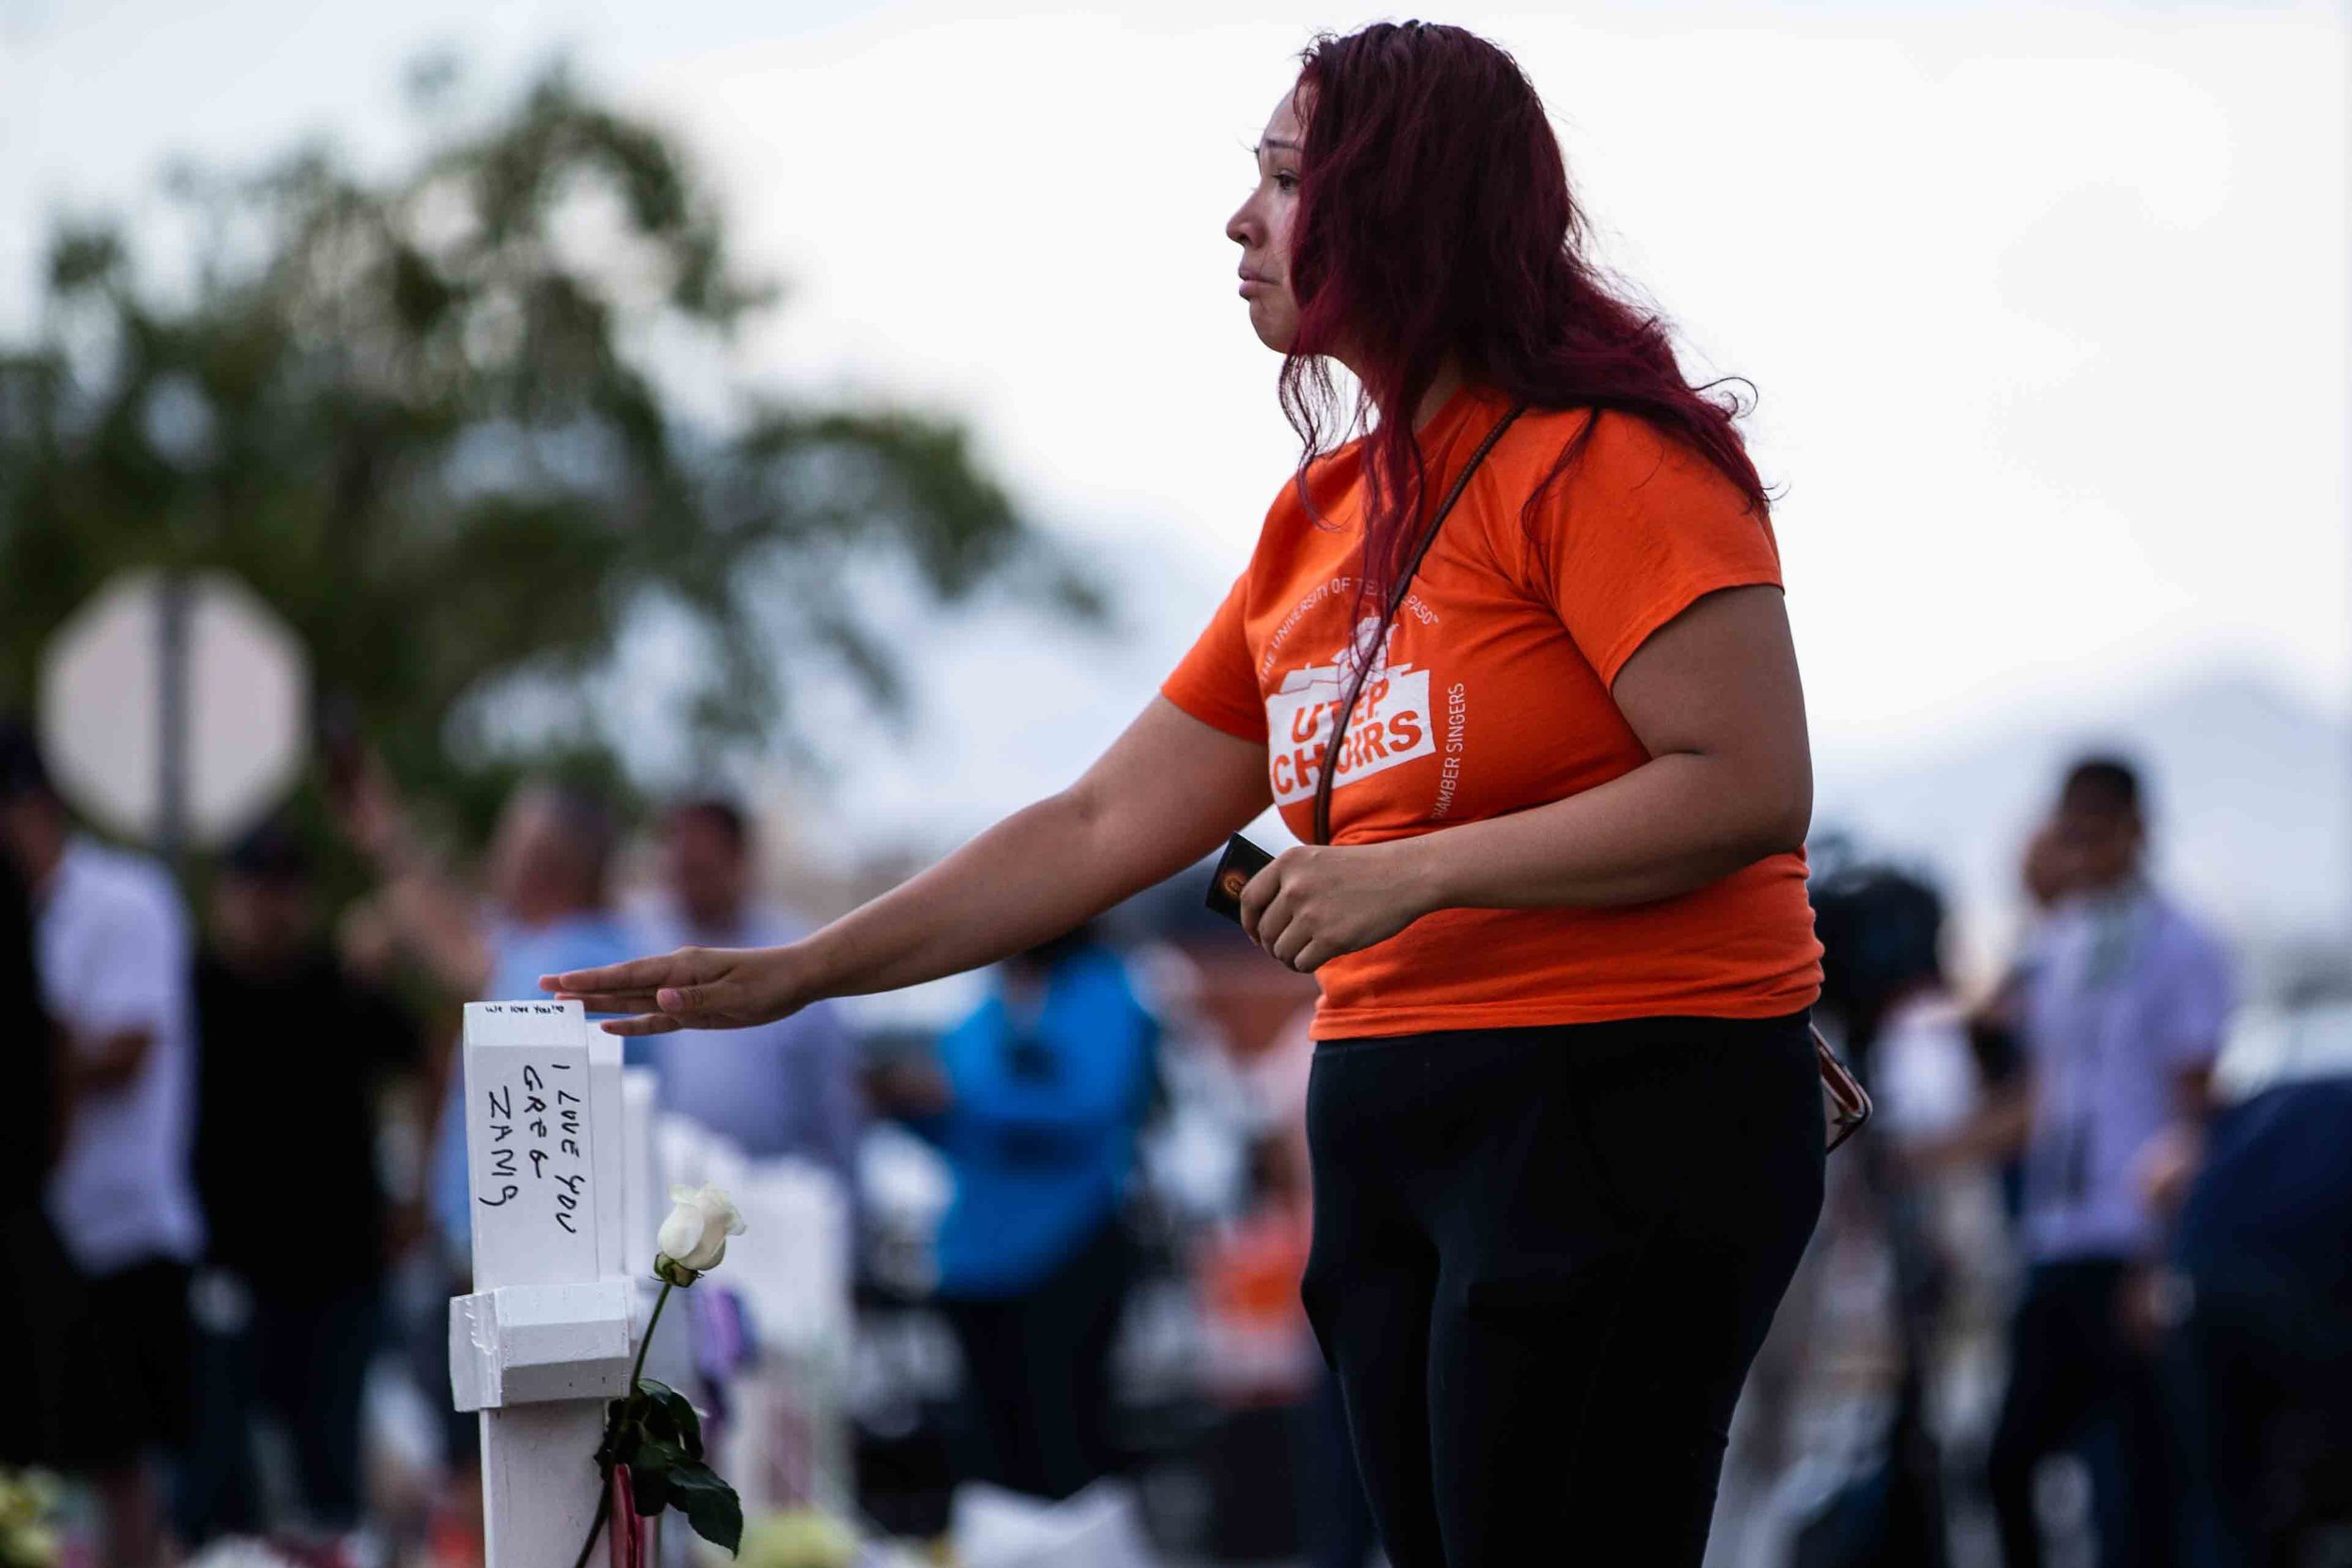 A woman approaches the crosses with the names of the victims of the mass shooting occurred in Walmart last Saturday morning have been placed on the scene to honor their memory in El Paso on Monday, August 5, 2019.